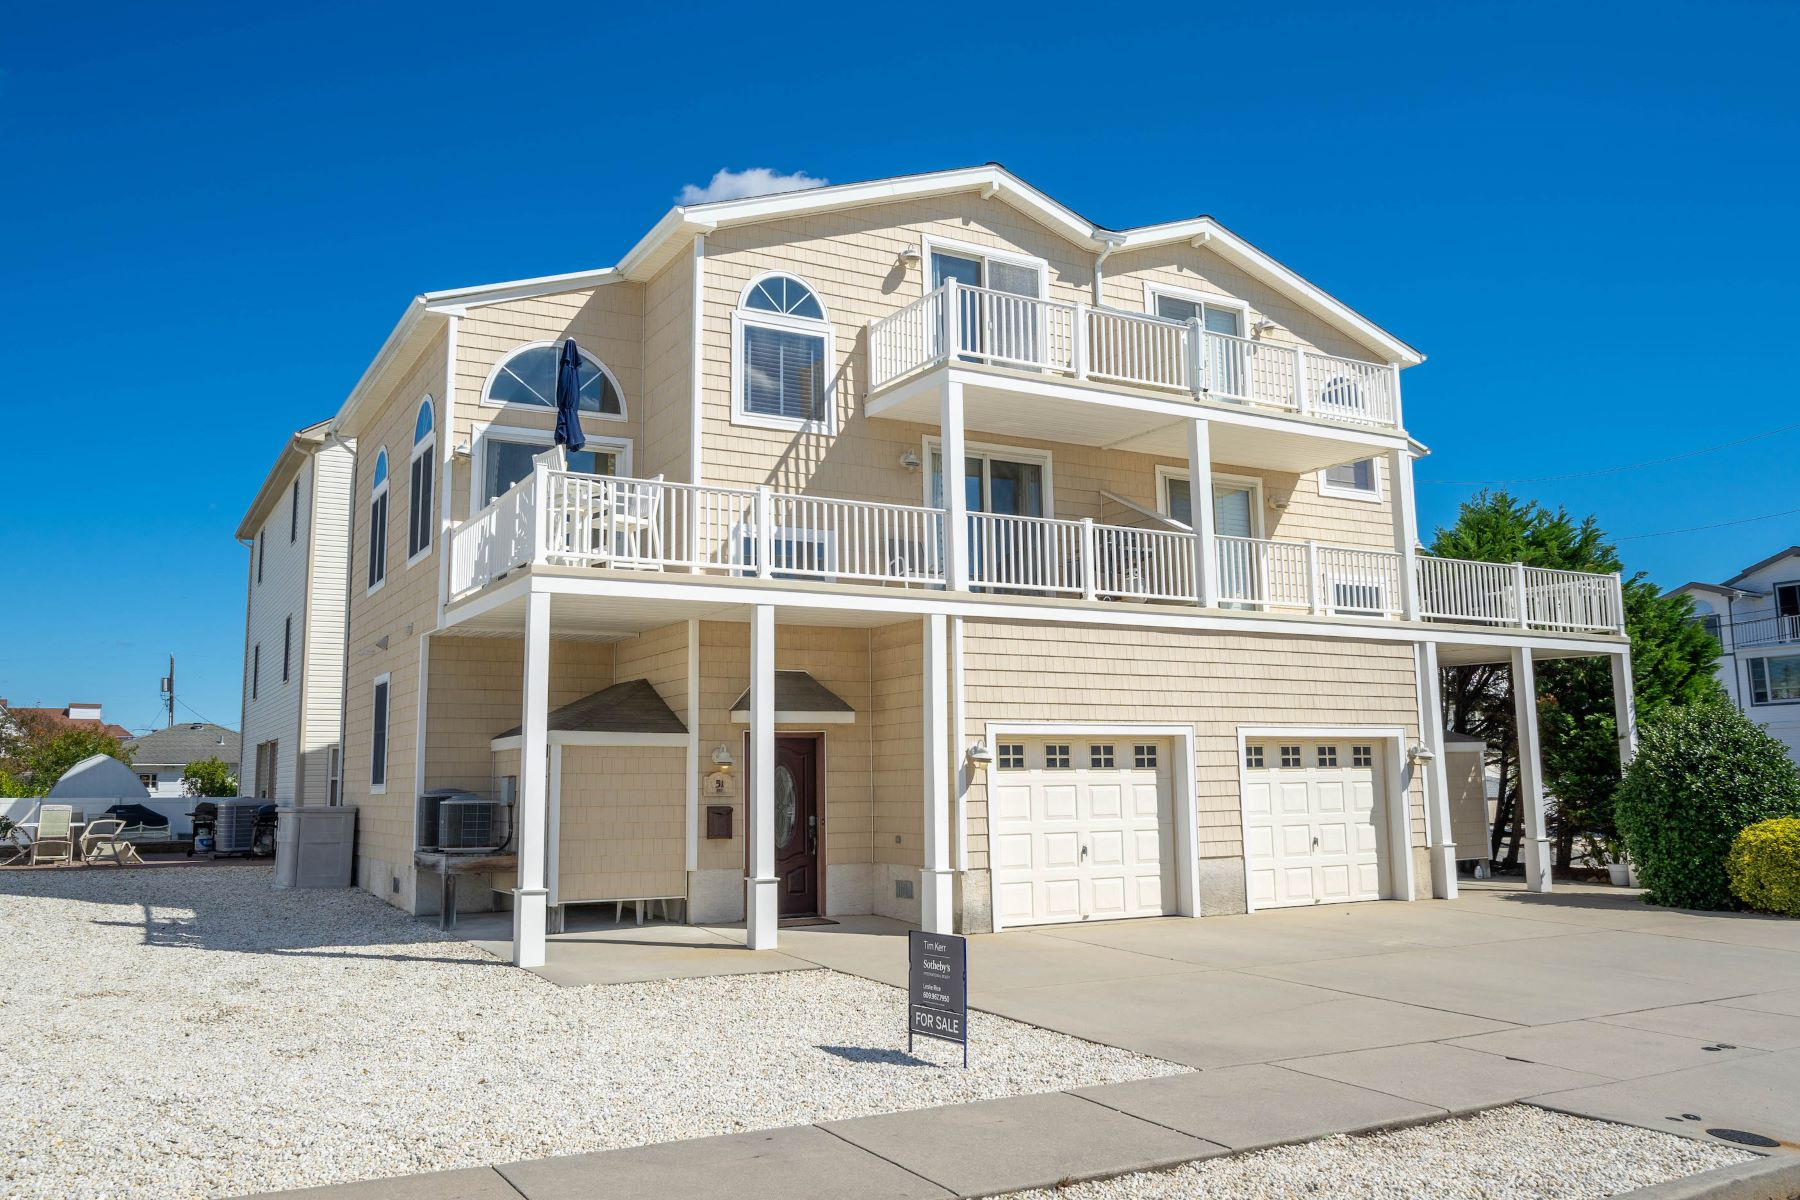 townhouses por un Venta en Sea Isle City Townhome 51 83rd Street West Unit Sea Isle City, Nueva Jersey 08243 Estados Unidos